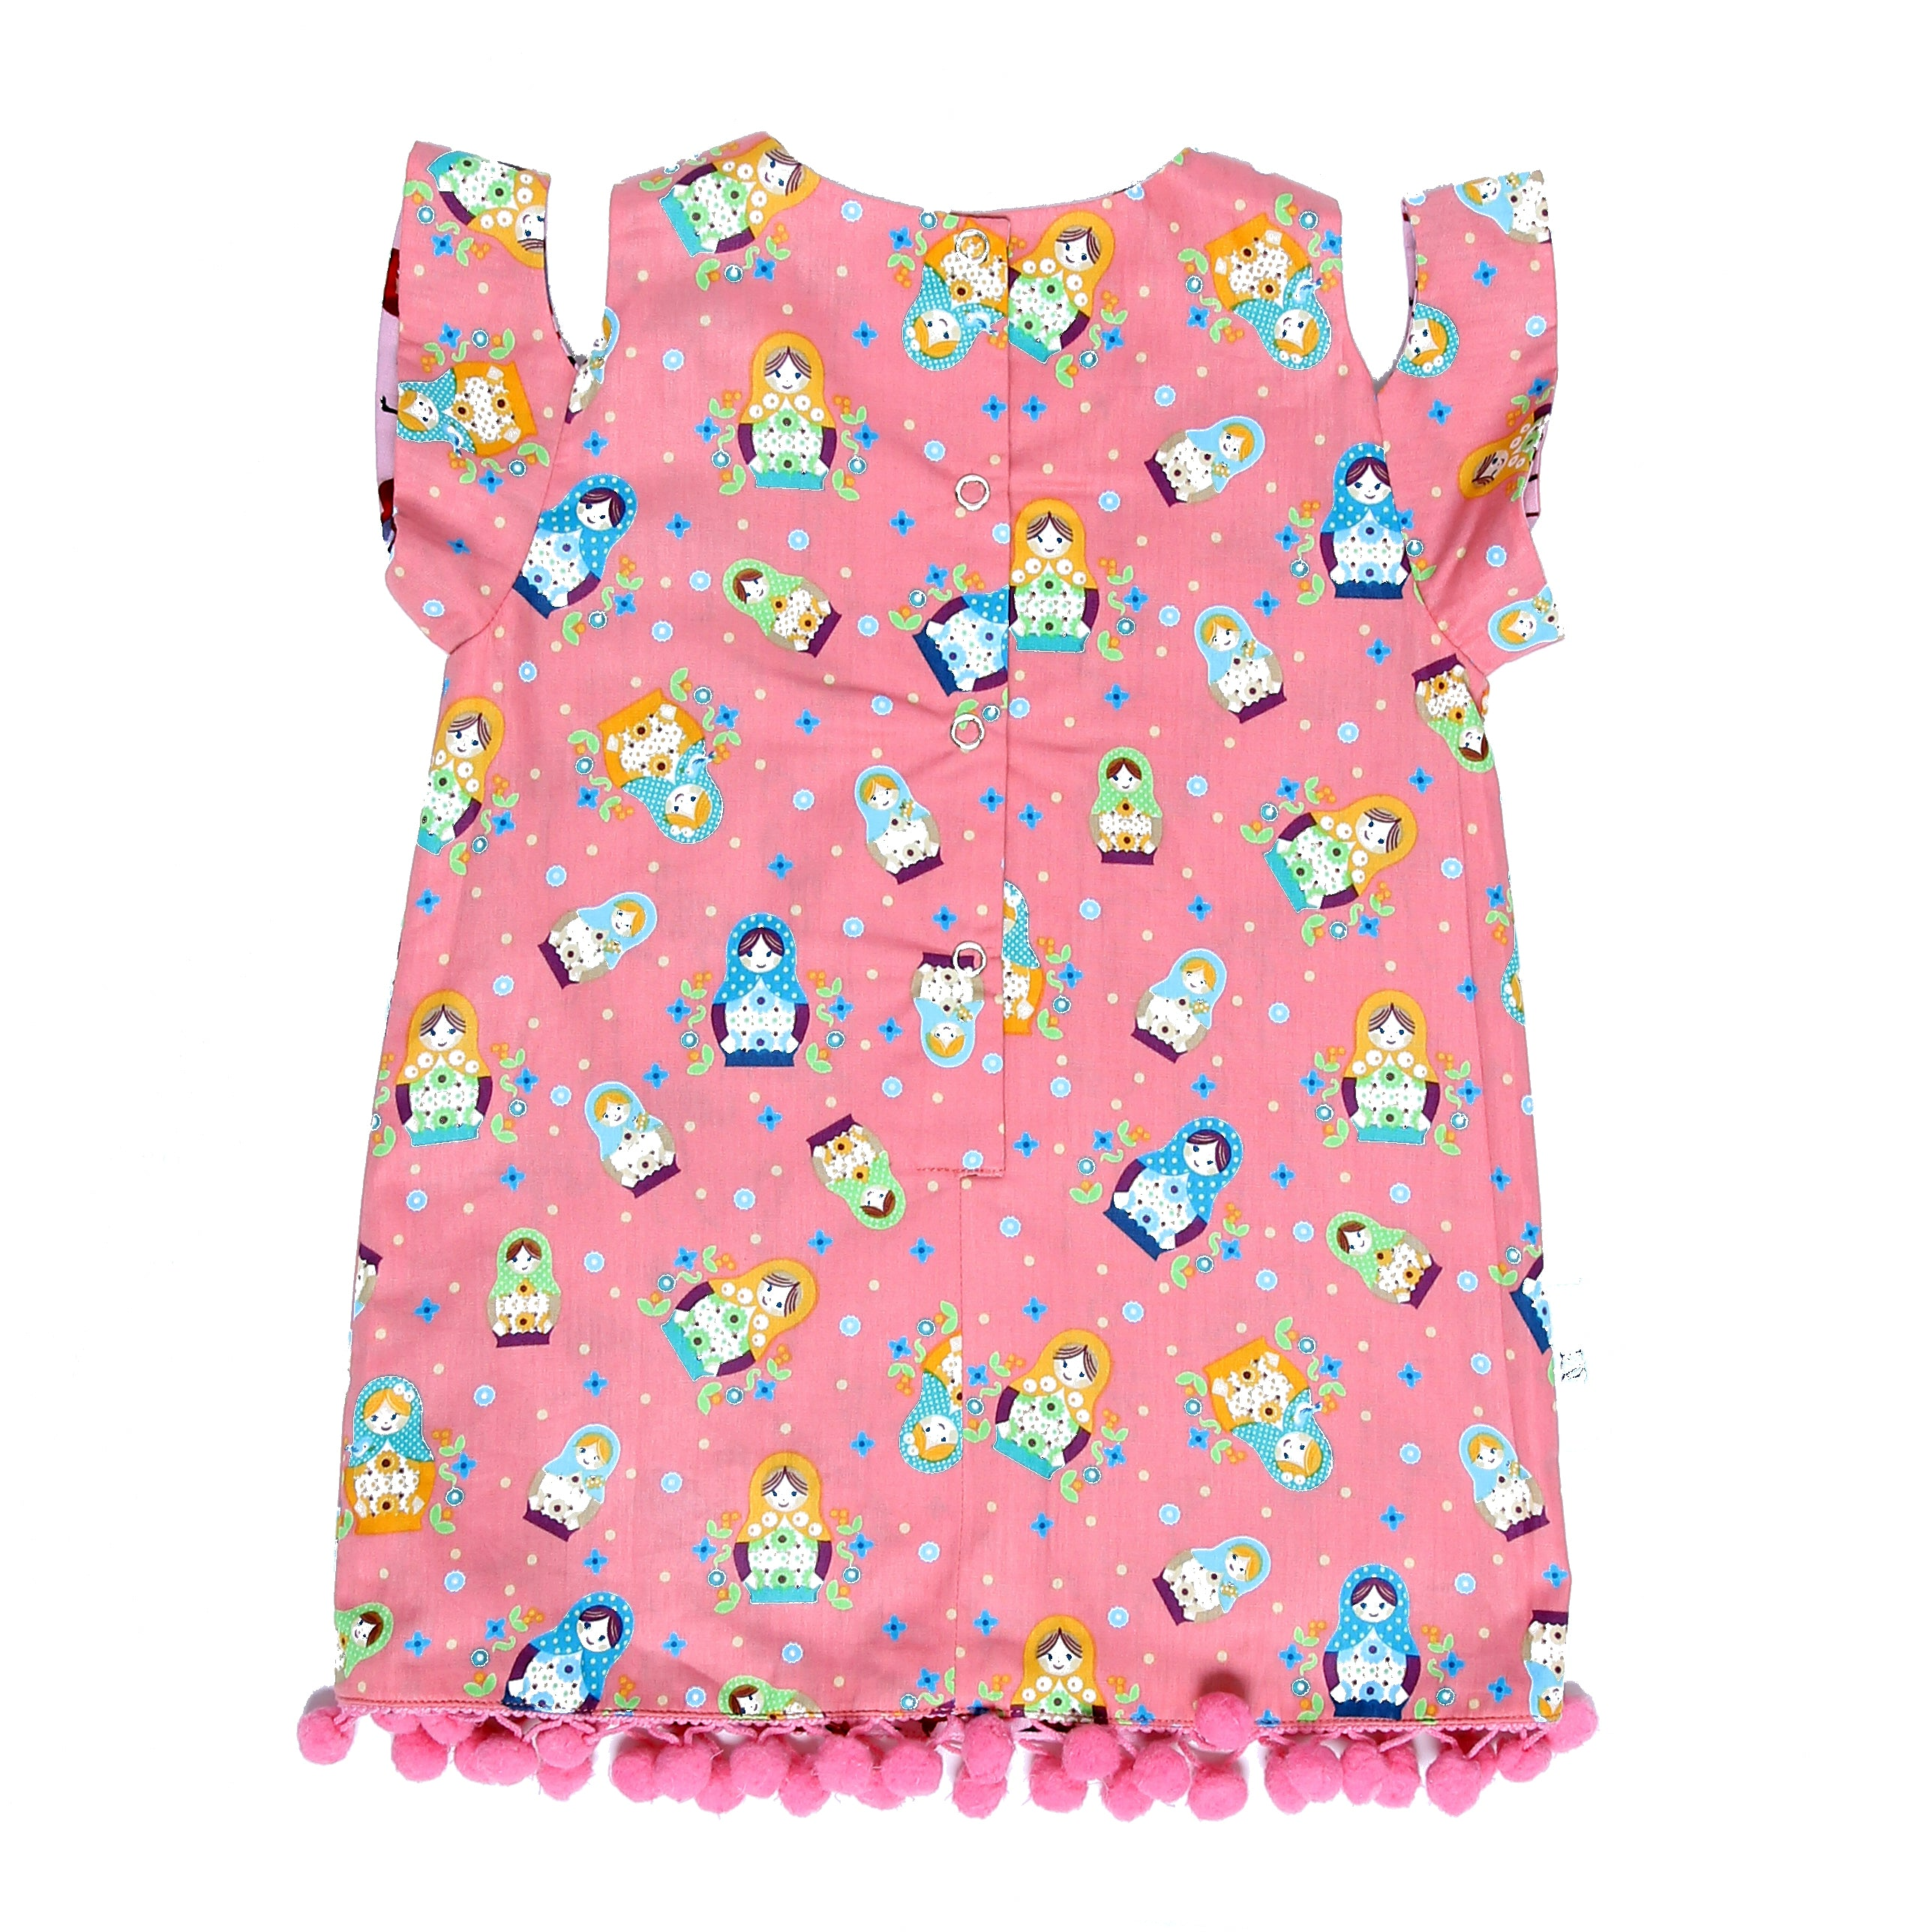 Matryoshka Off-Shoulder Reversible Dress Pink - KEEPERS